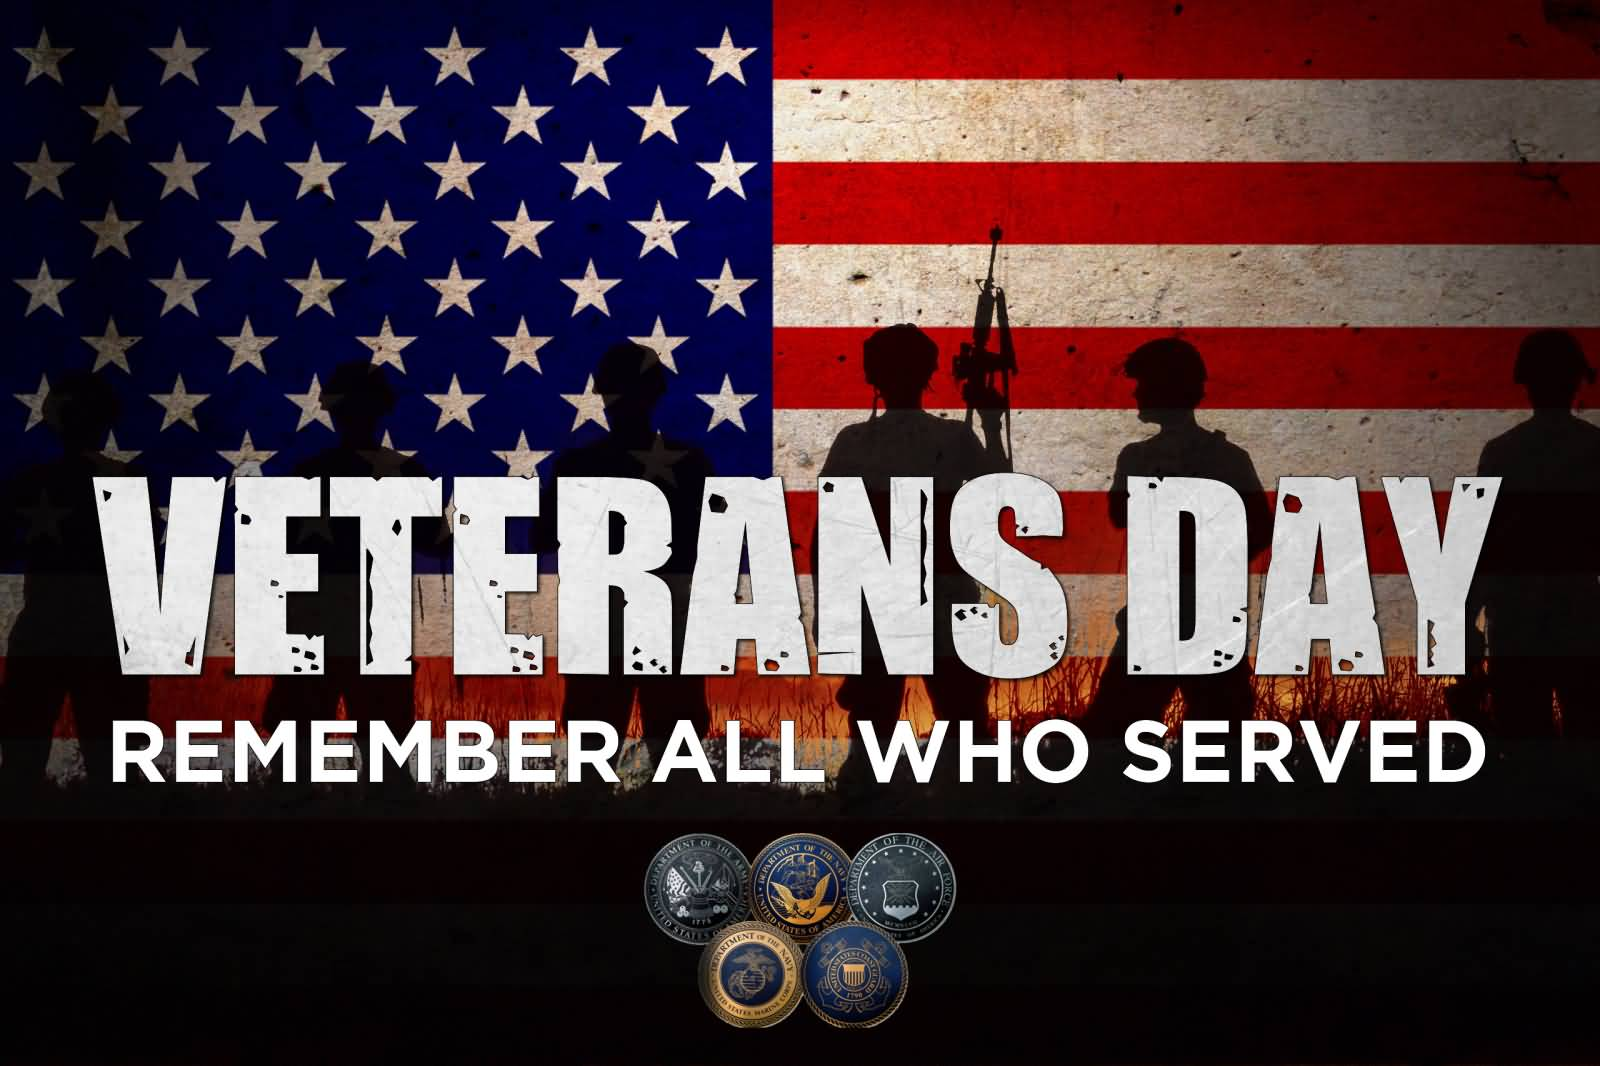 Veterans day images 2017 free download veterans day images veterans day images kristyandbryce Choice Image